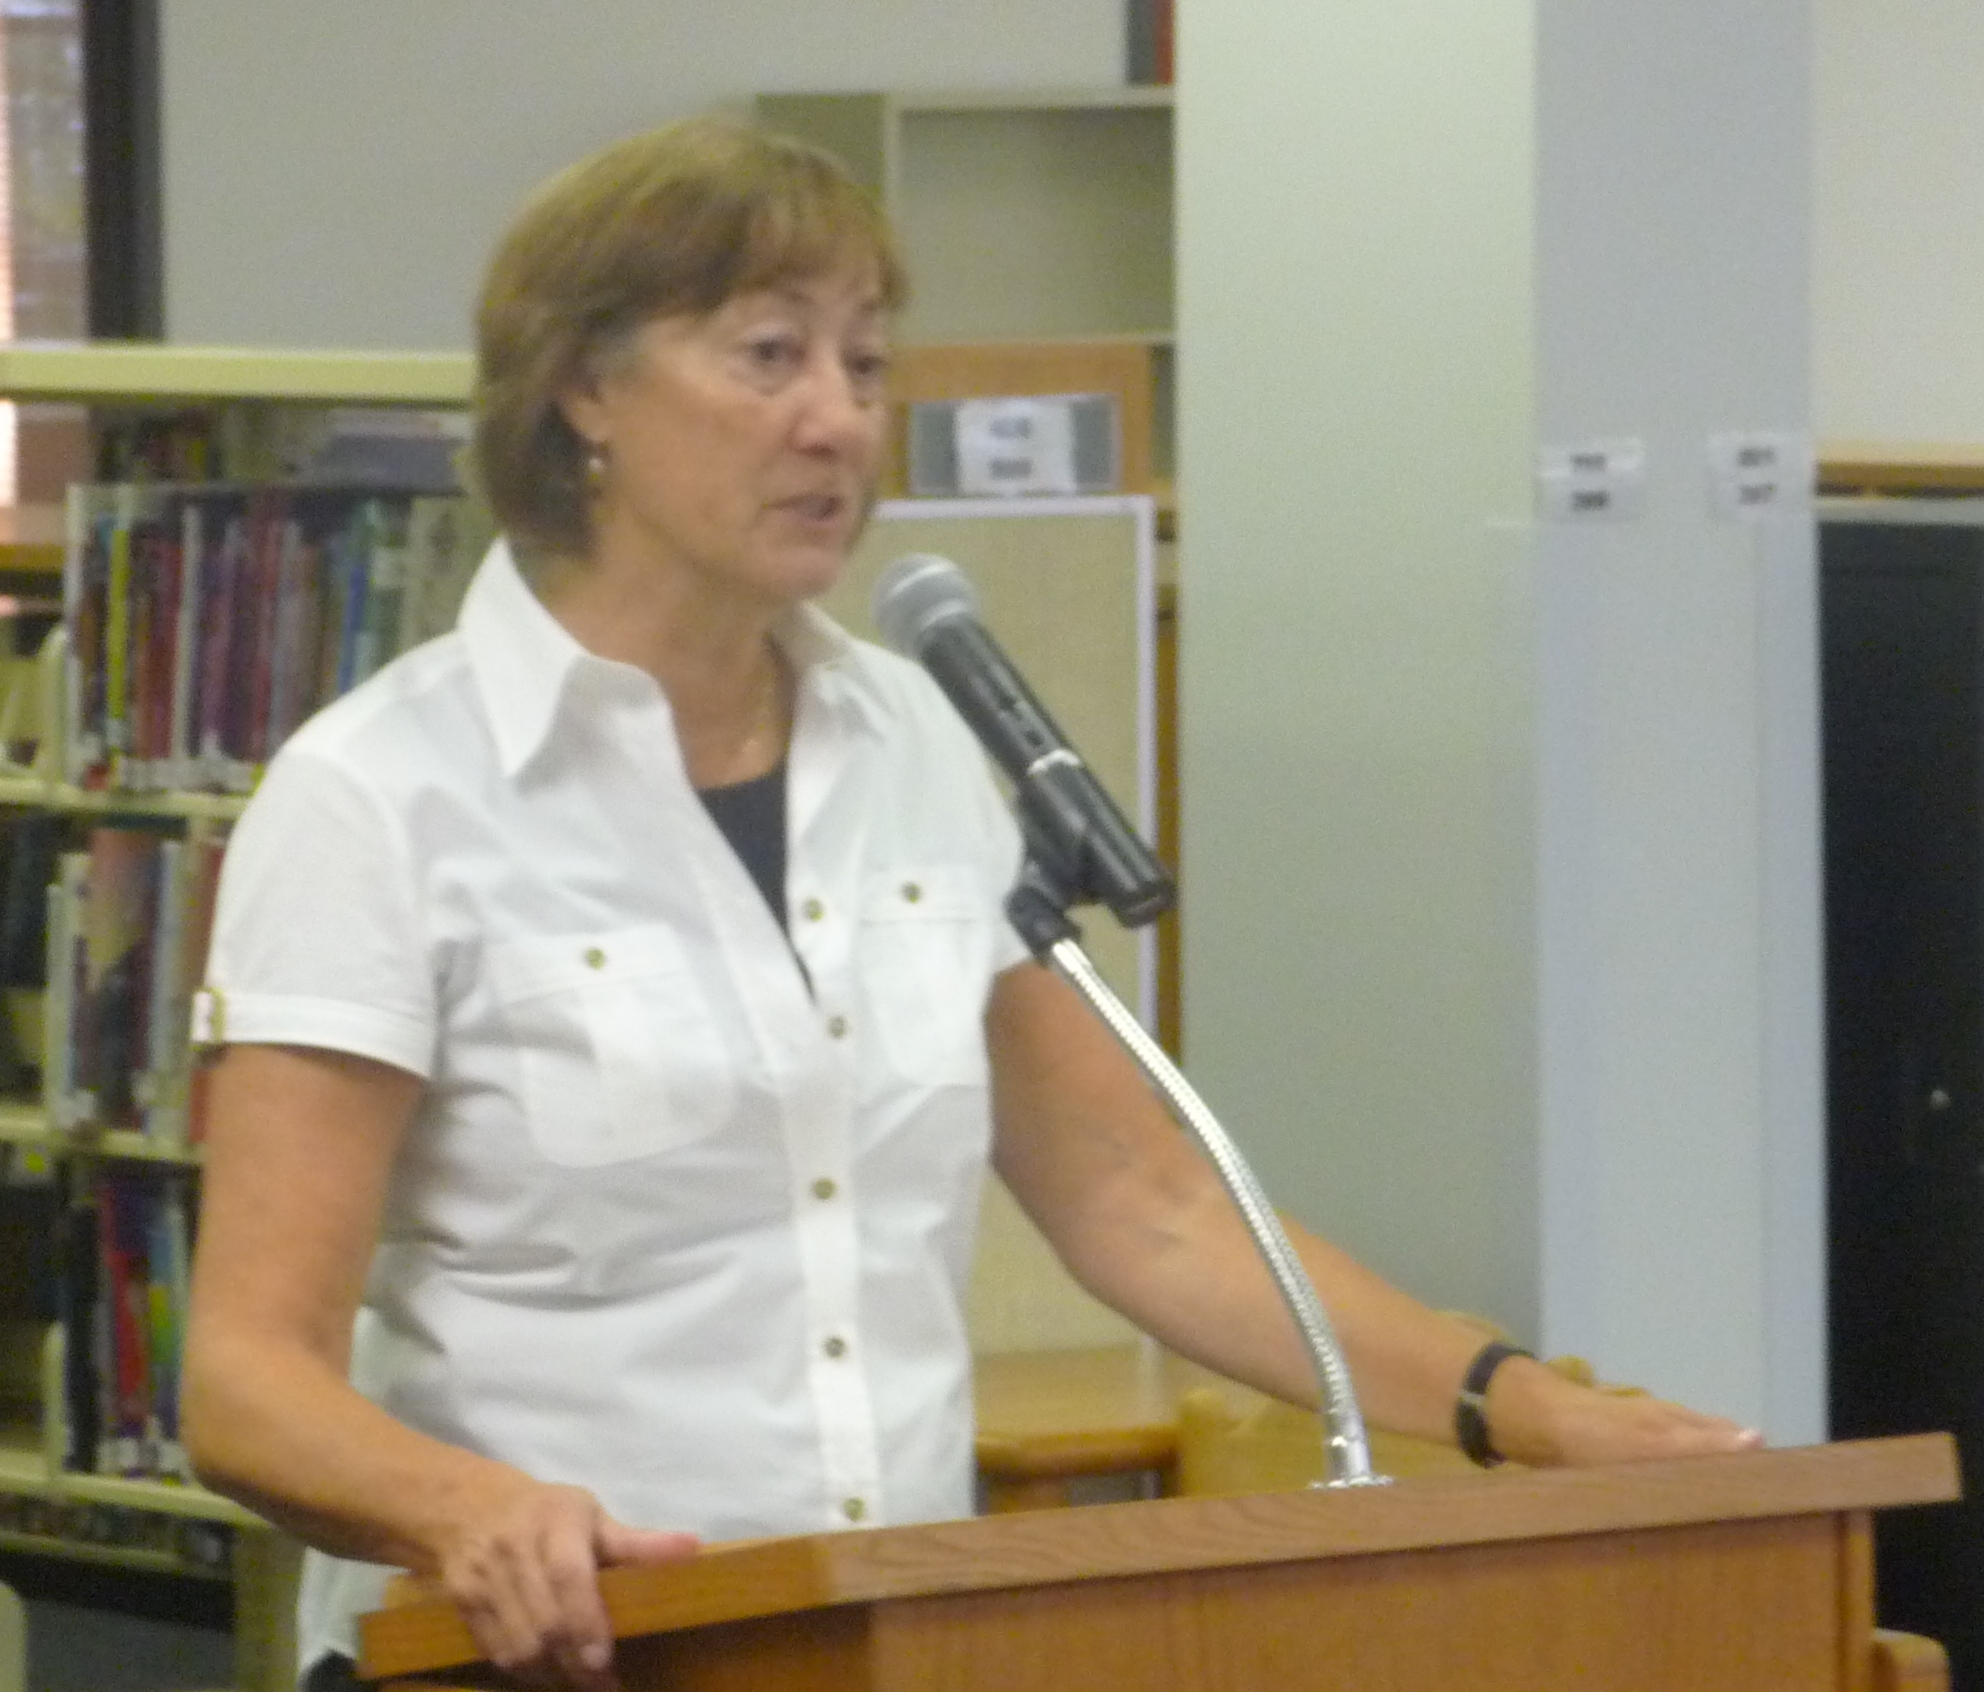 Creech giving a talk at a school in 2009